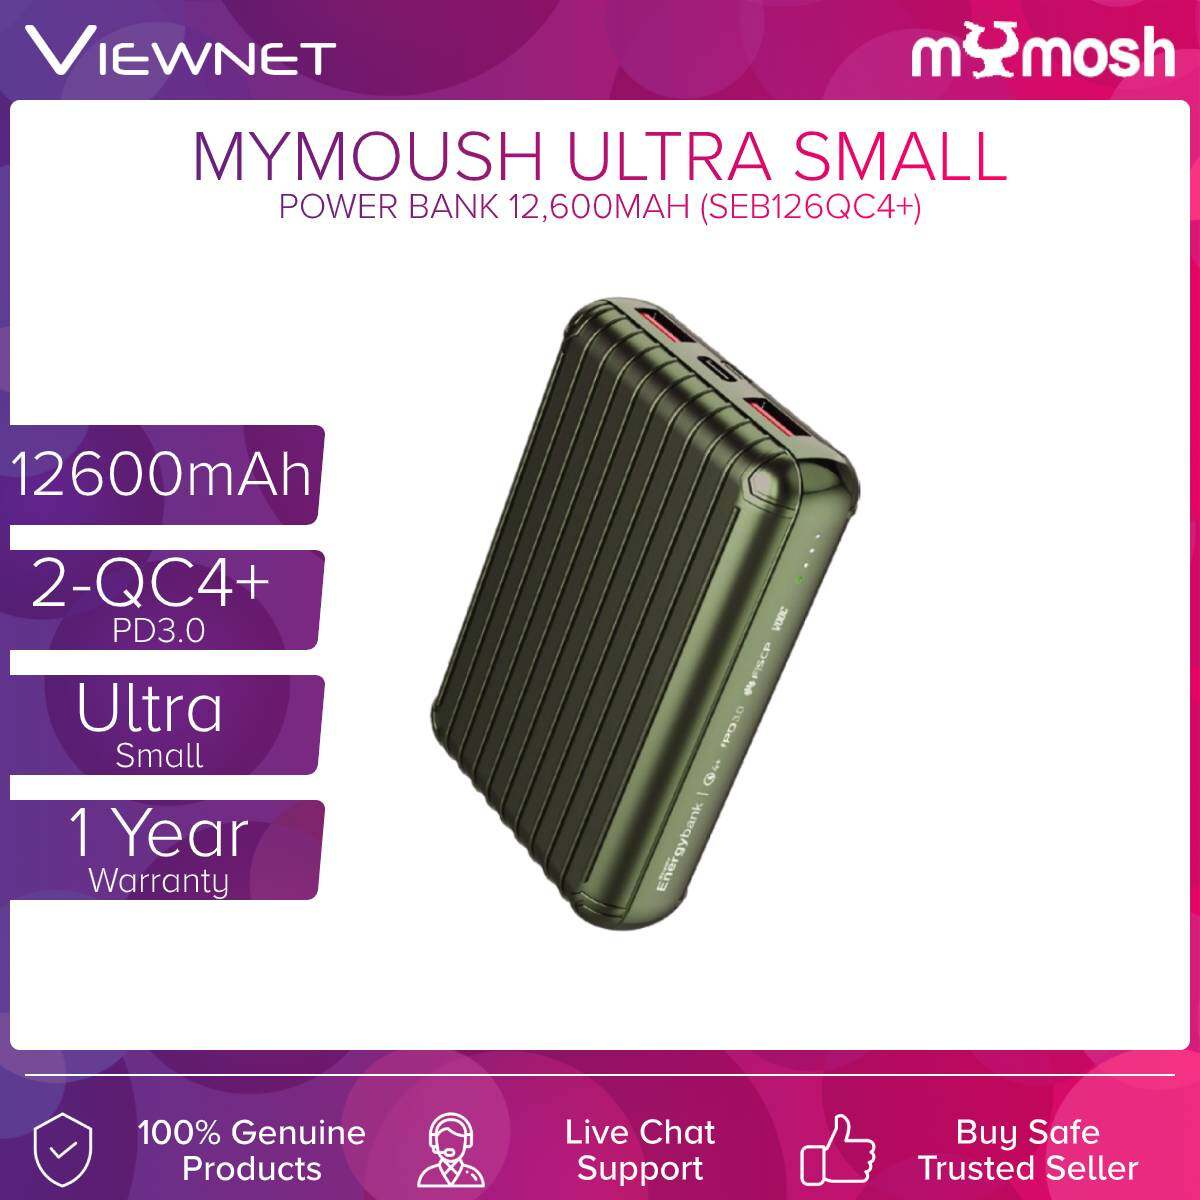 Mymosh (SEB126QC4+) 12600mAh 2-QC4+ PD3.0 Ultra Small Power Bank Gold / Green / Silver/Black